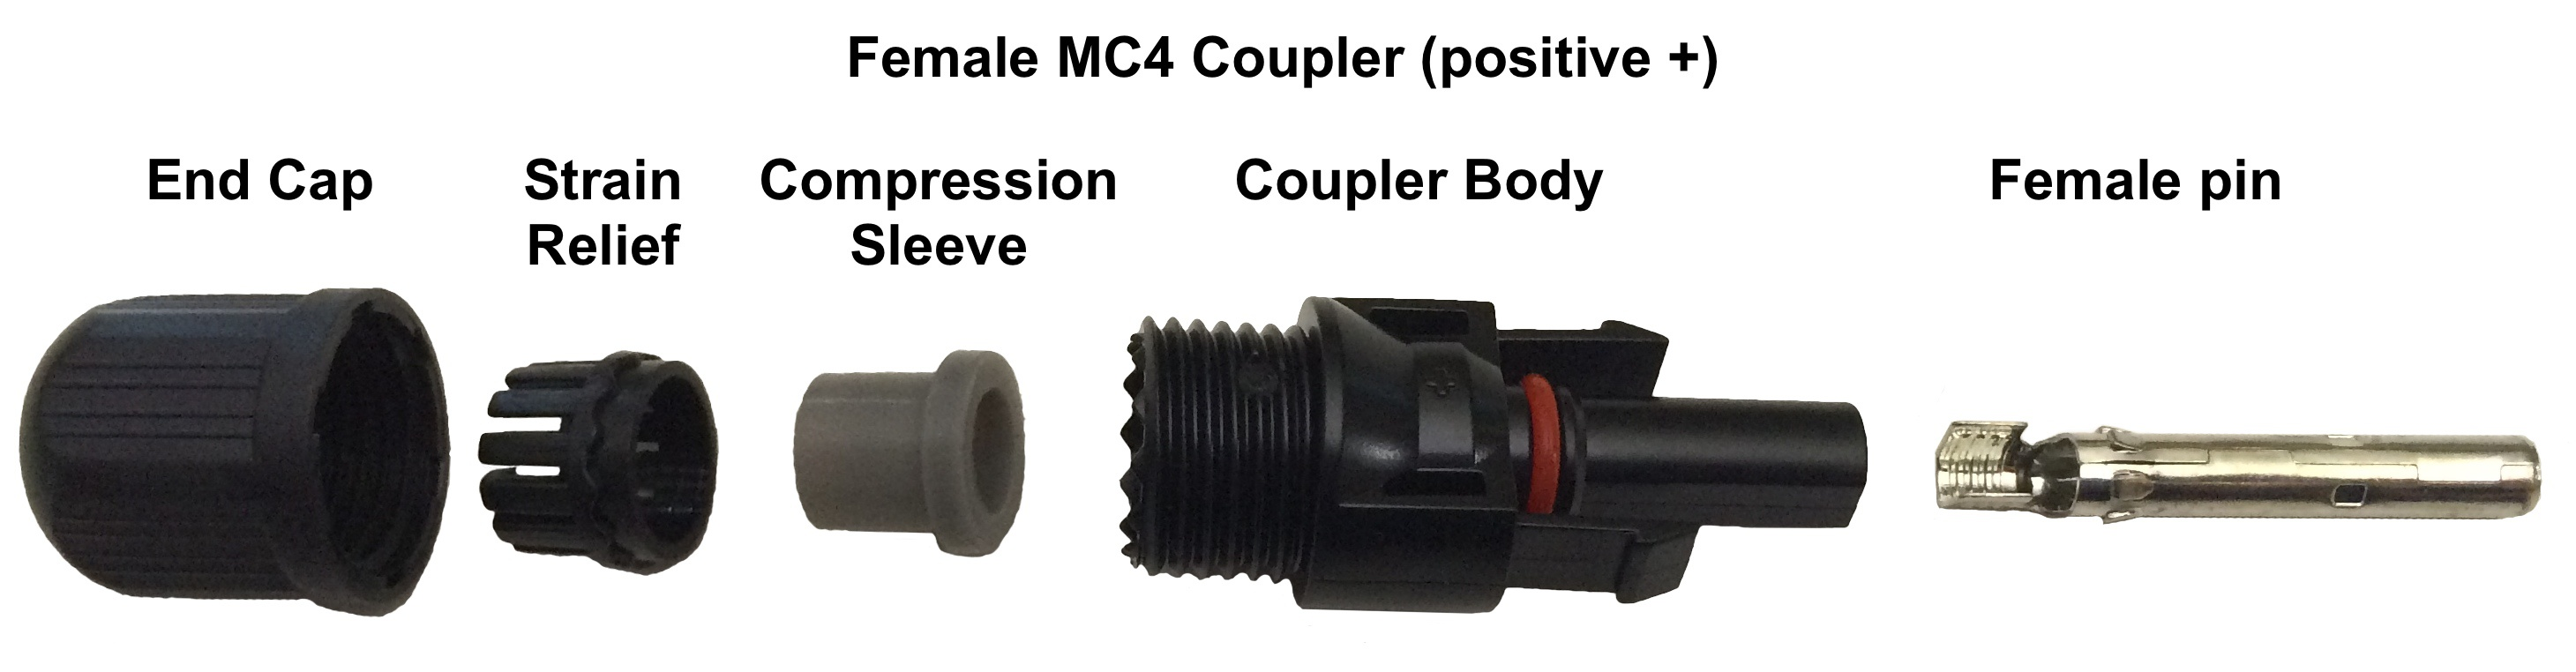 MC4 Female Connector - MC4 Crimp Connectors - Bulk Female - Pack of 100 -Bulk MC4 Crimp Connectors - 100 FEMALE connectors per bag - con-ele, connectors - MC4 Female Connector